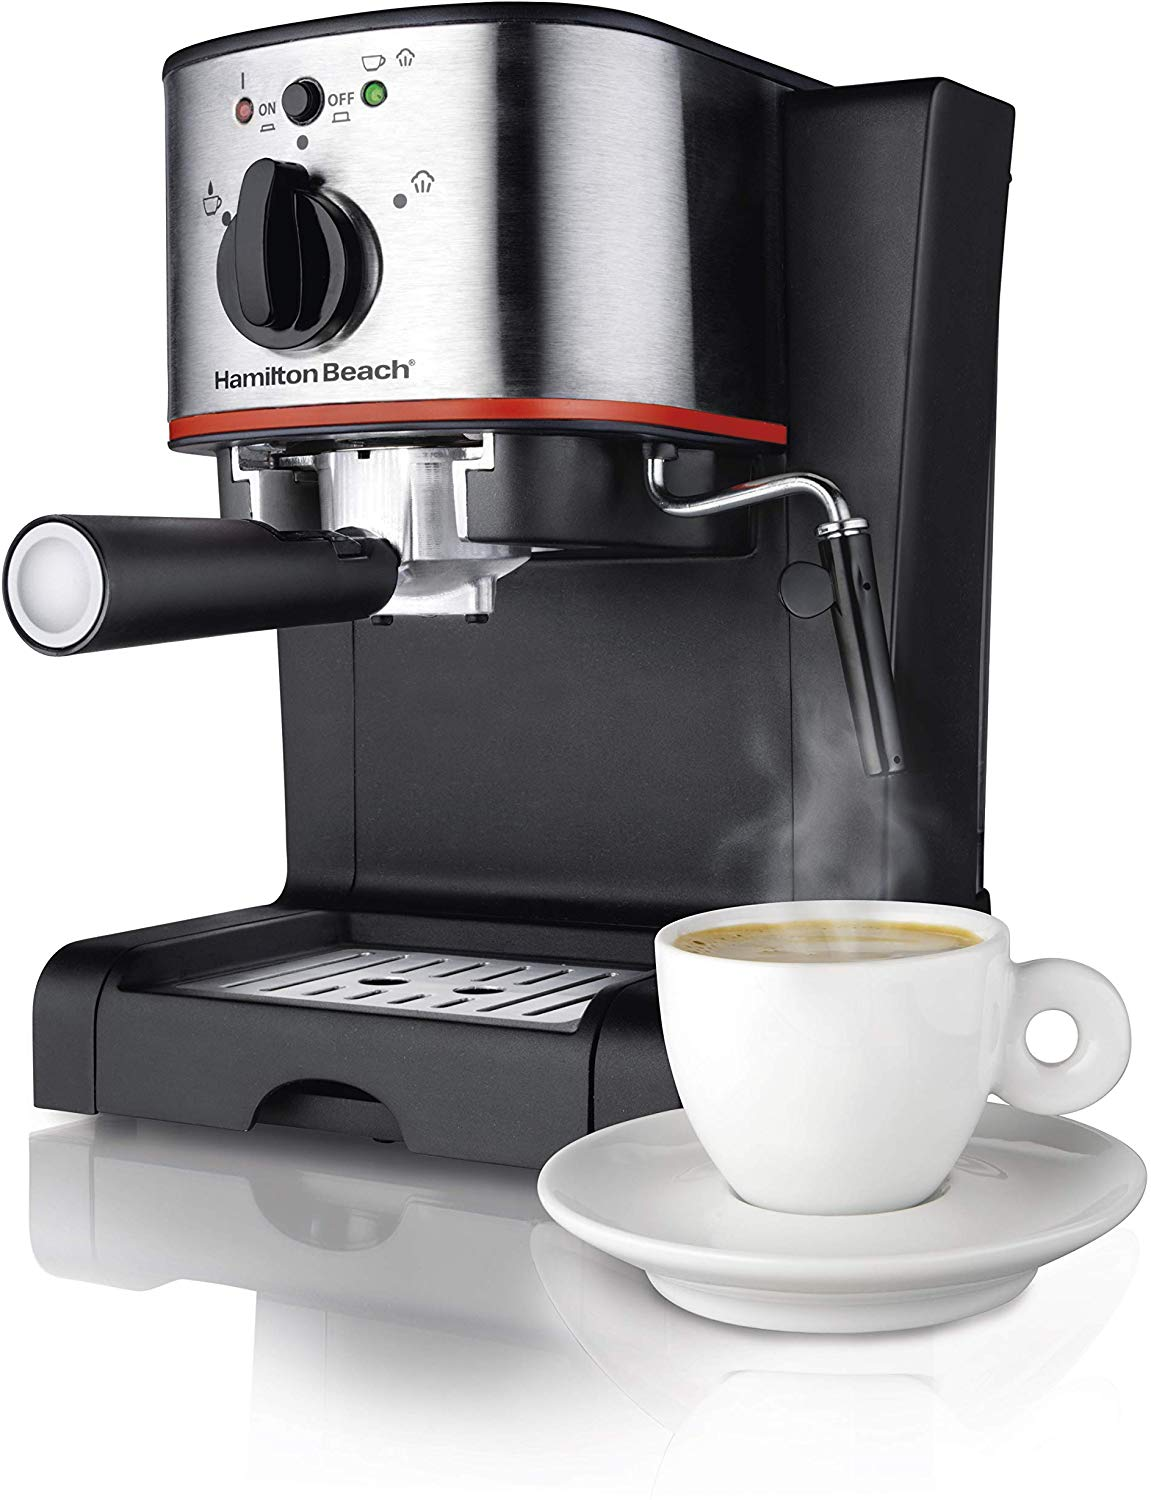 Hamilton Beach Espresso, Latte and Cappuccino Machine with Milk Frother, 15 Bar Italian Pump, Black and Stainless (40792),